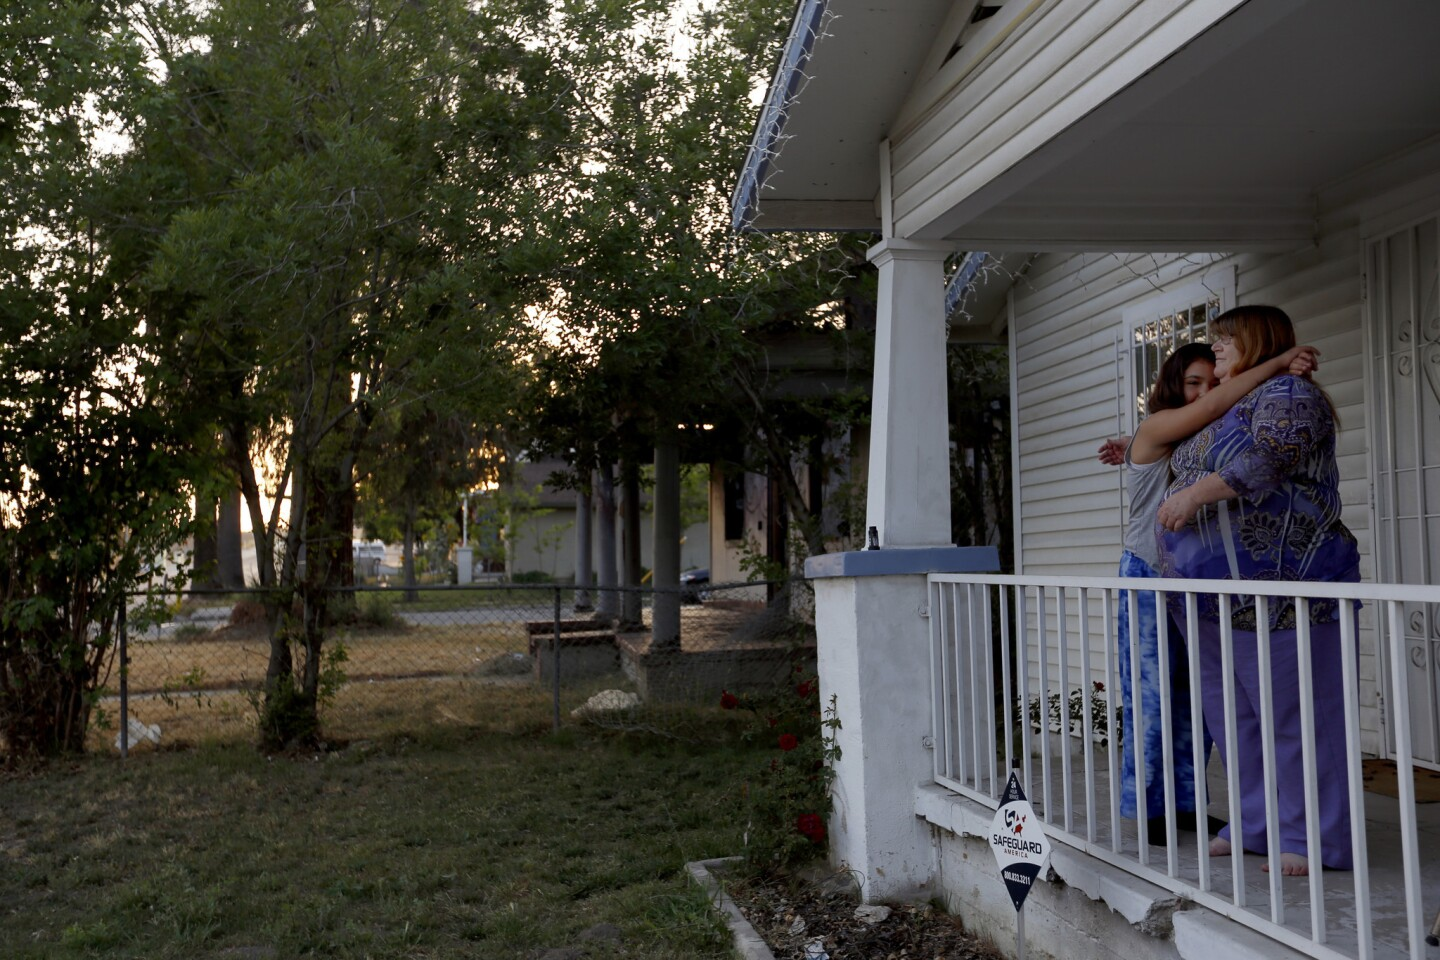 Esmeralda Phillips, 11, left, hugs her grandmother Diane Hayes on Hayes' front porch in San Bernardino. In 2012, a meth fire gutted the home next door and spread to Hayes' home. Hayes rebuilt after the fire, and the burned out abandoned home next door has finally been torn down.